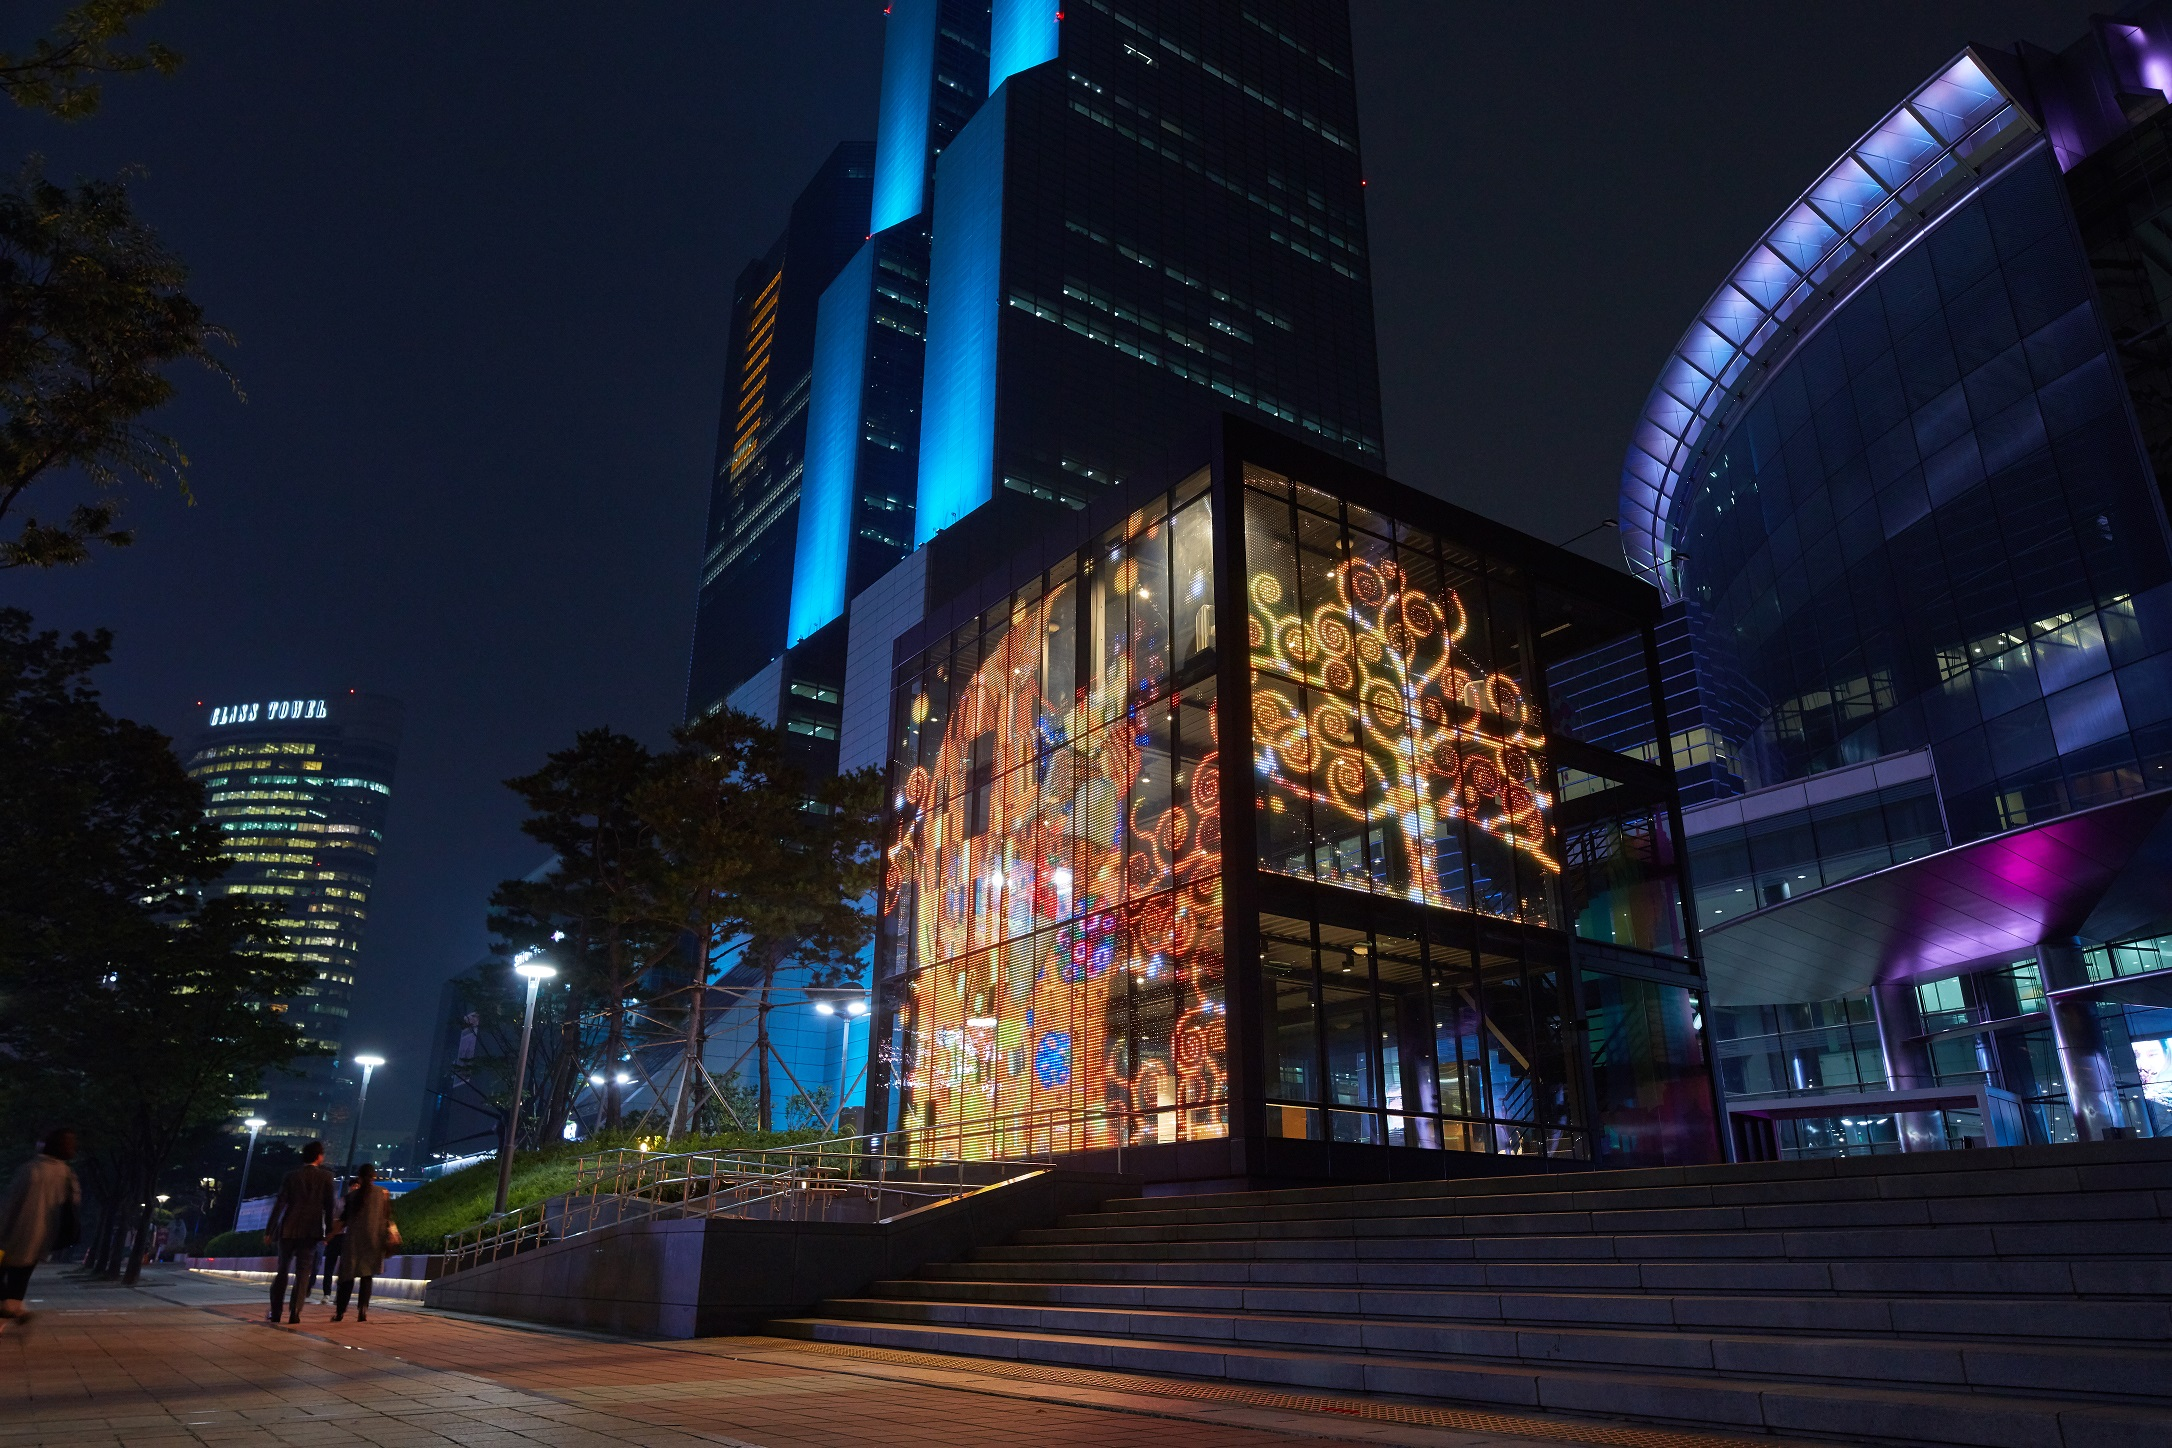 Architectural-grade LED glass, GLAAM Media Glass (G-Glass) featured at the a.COEX Convention Center Pop-Up G-Cube, Seoul, South Korea